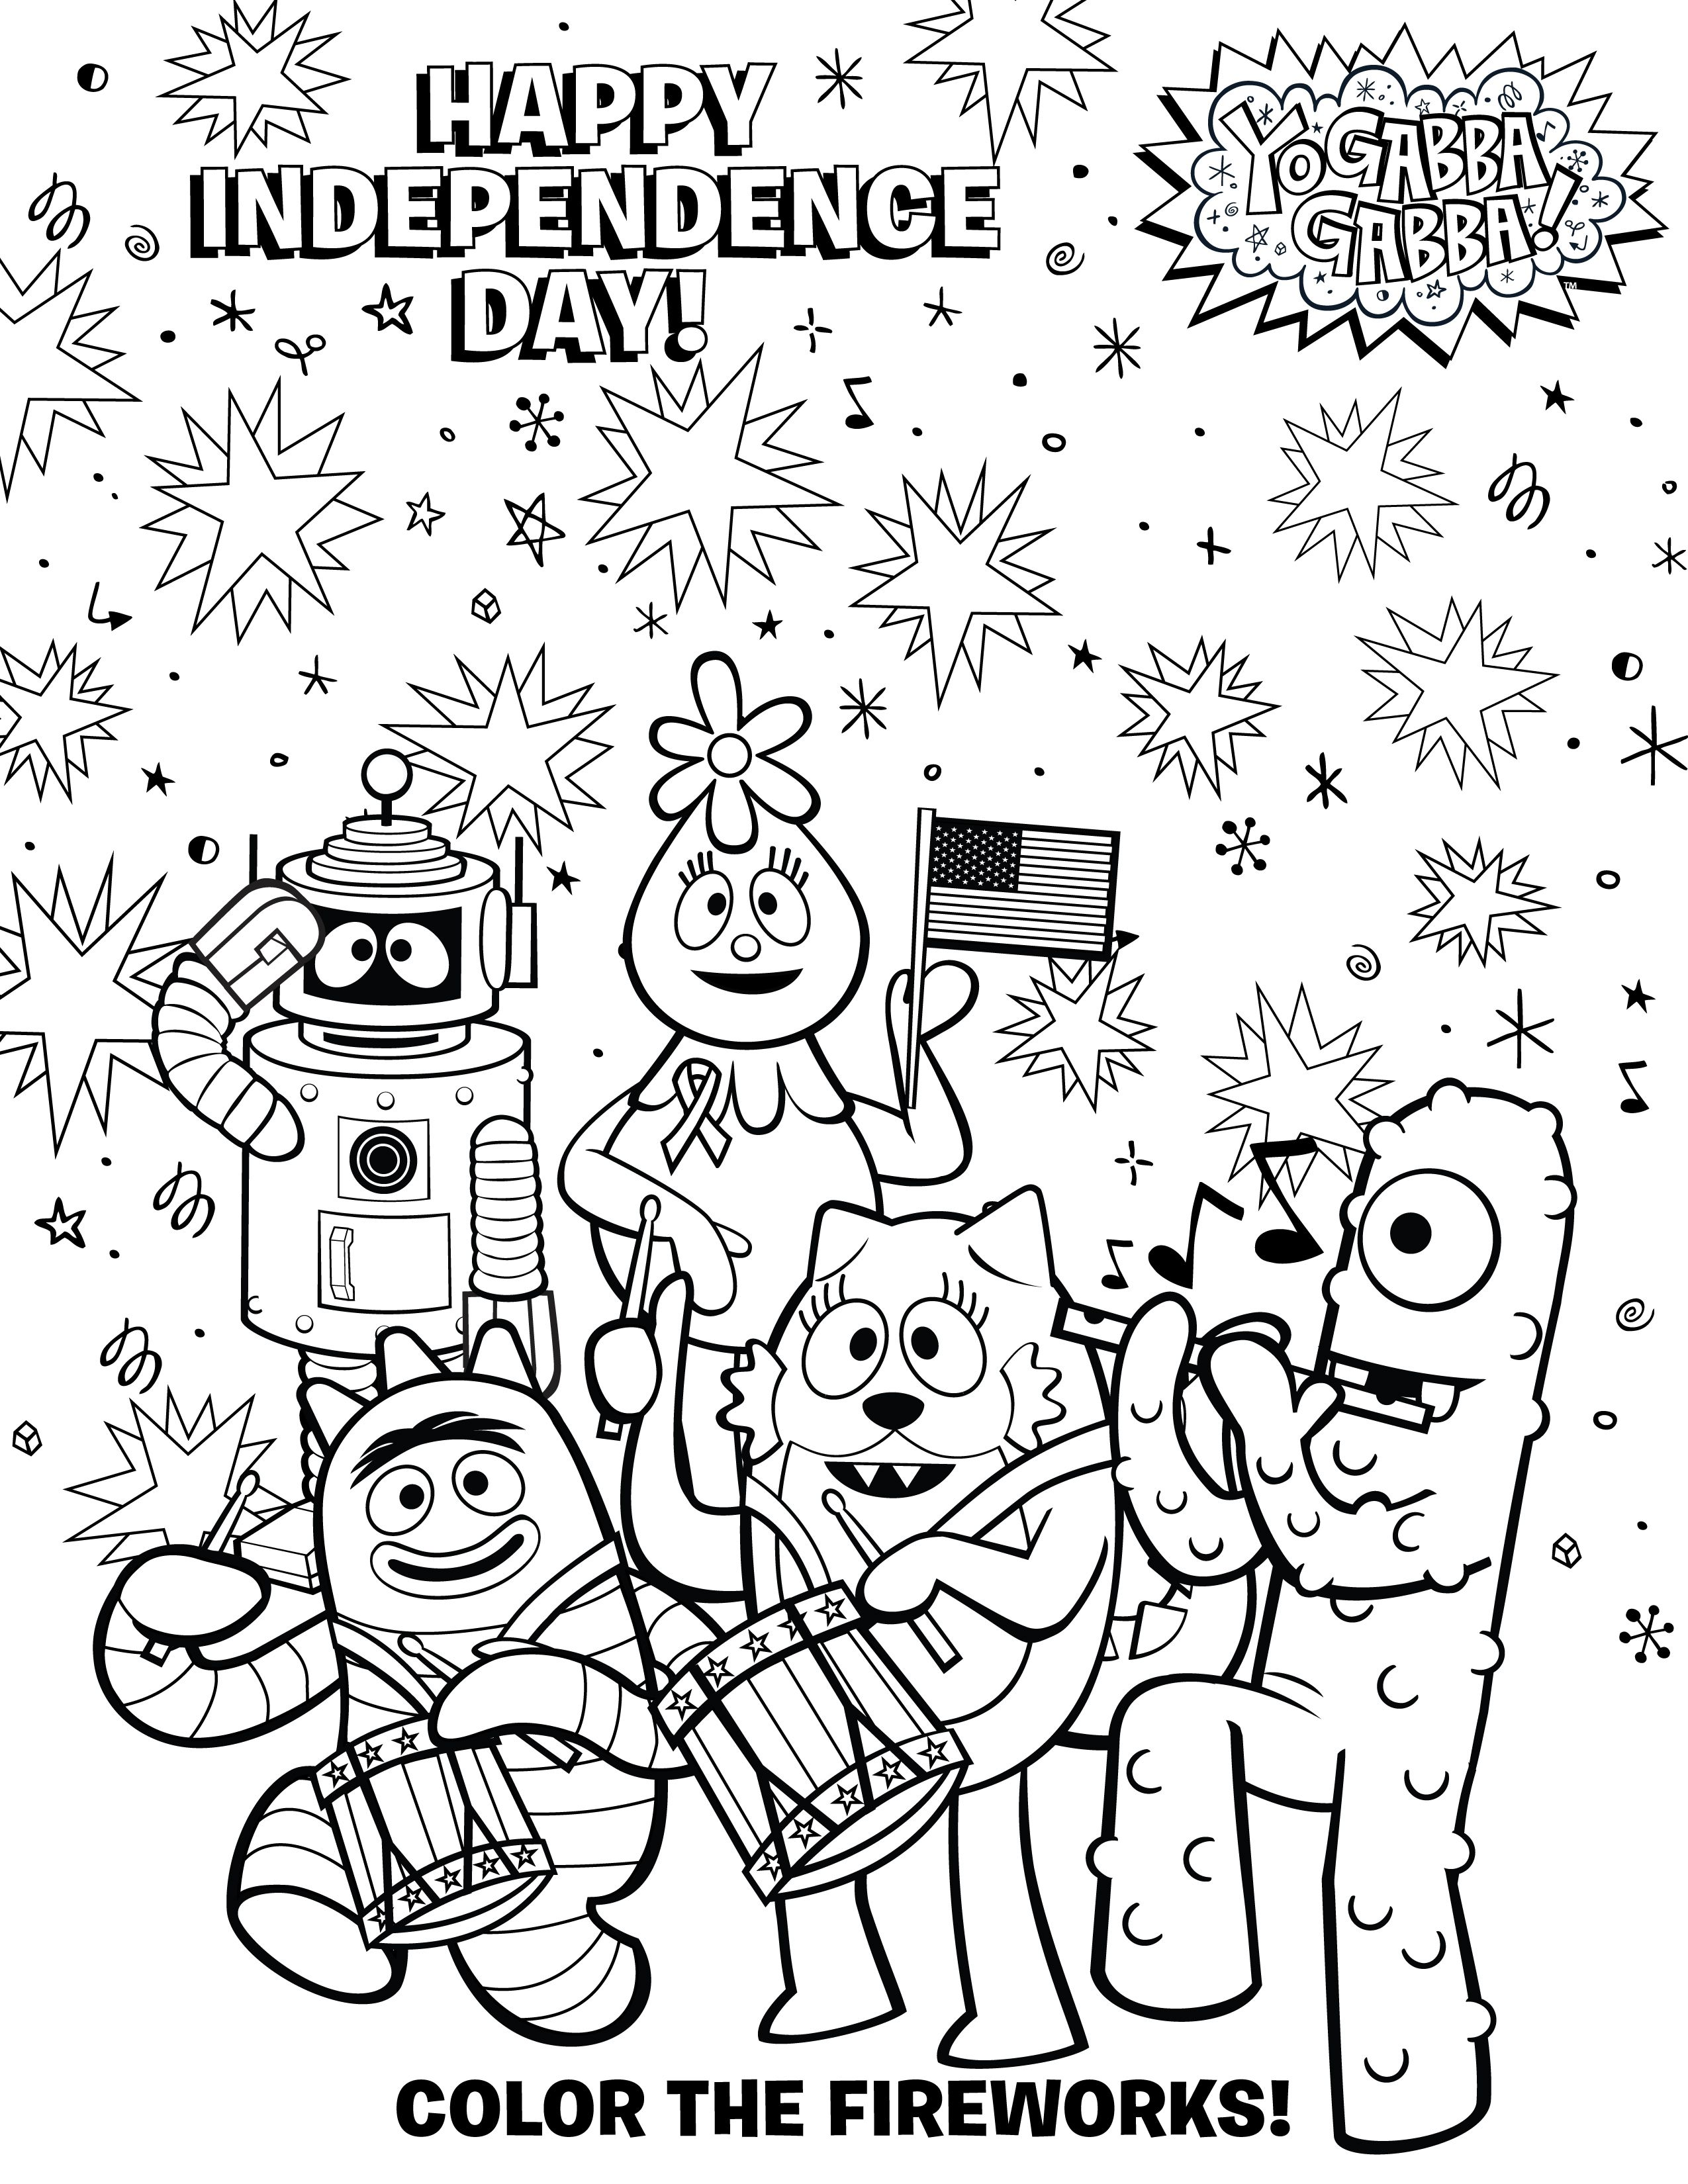 muno coloring pages - photo#13